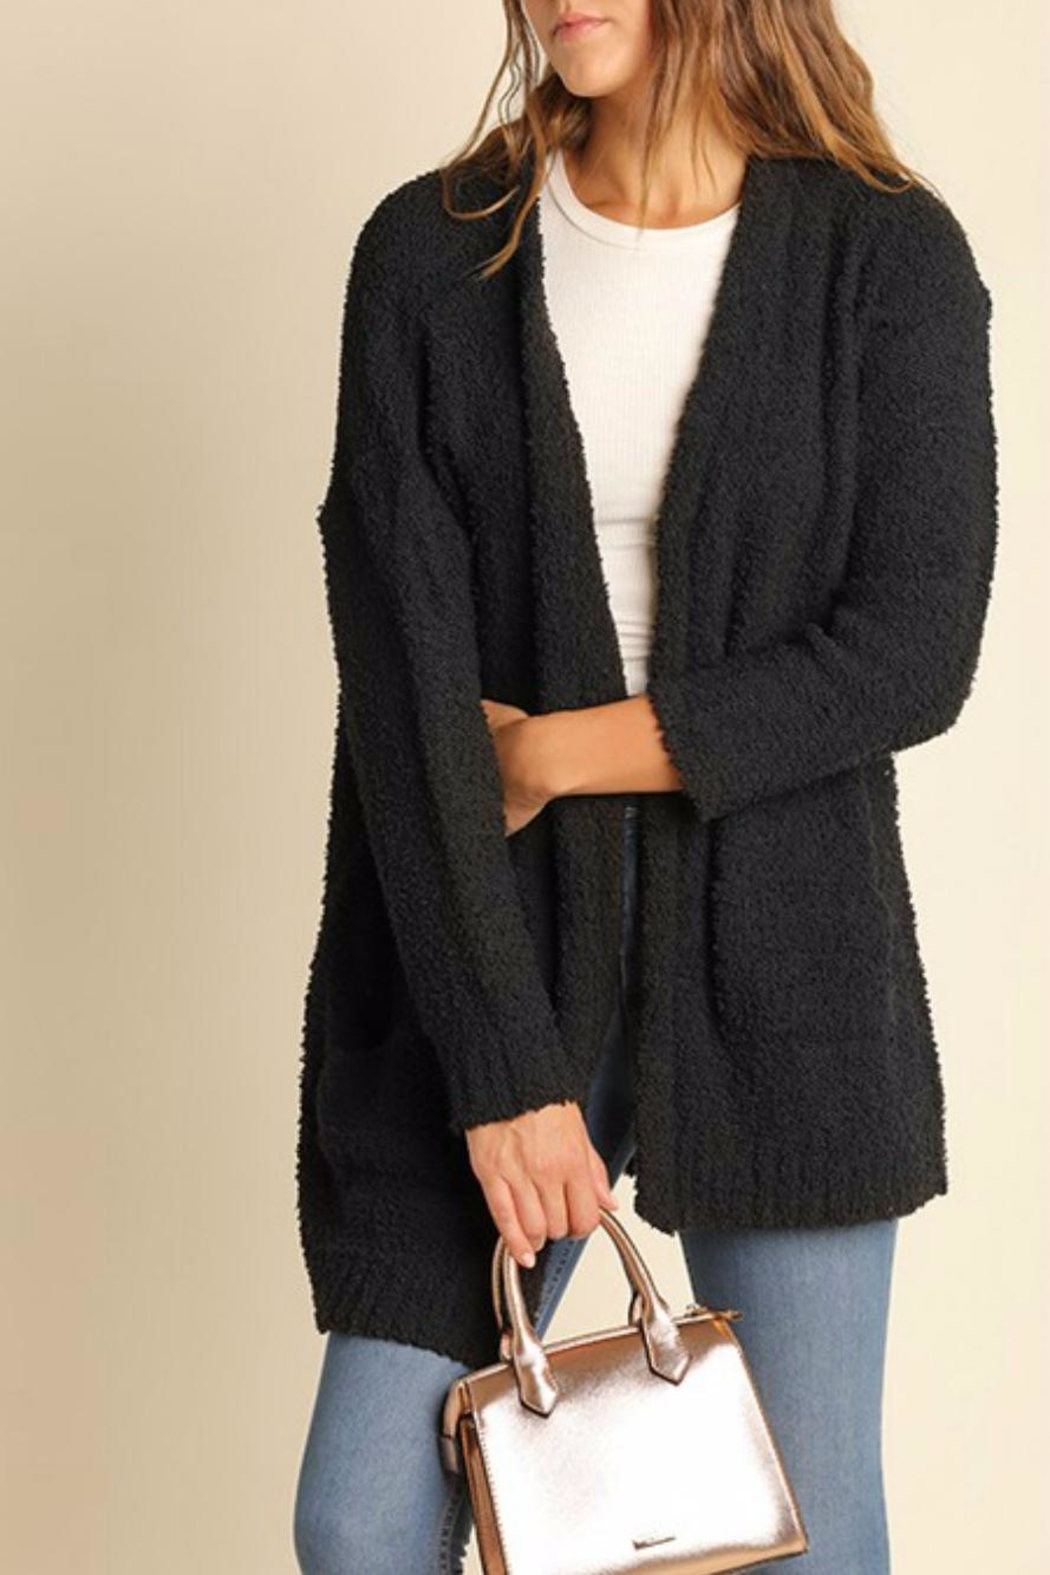 Umgee USA Charcoal Boucle Cardigan - Front Cropped Image